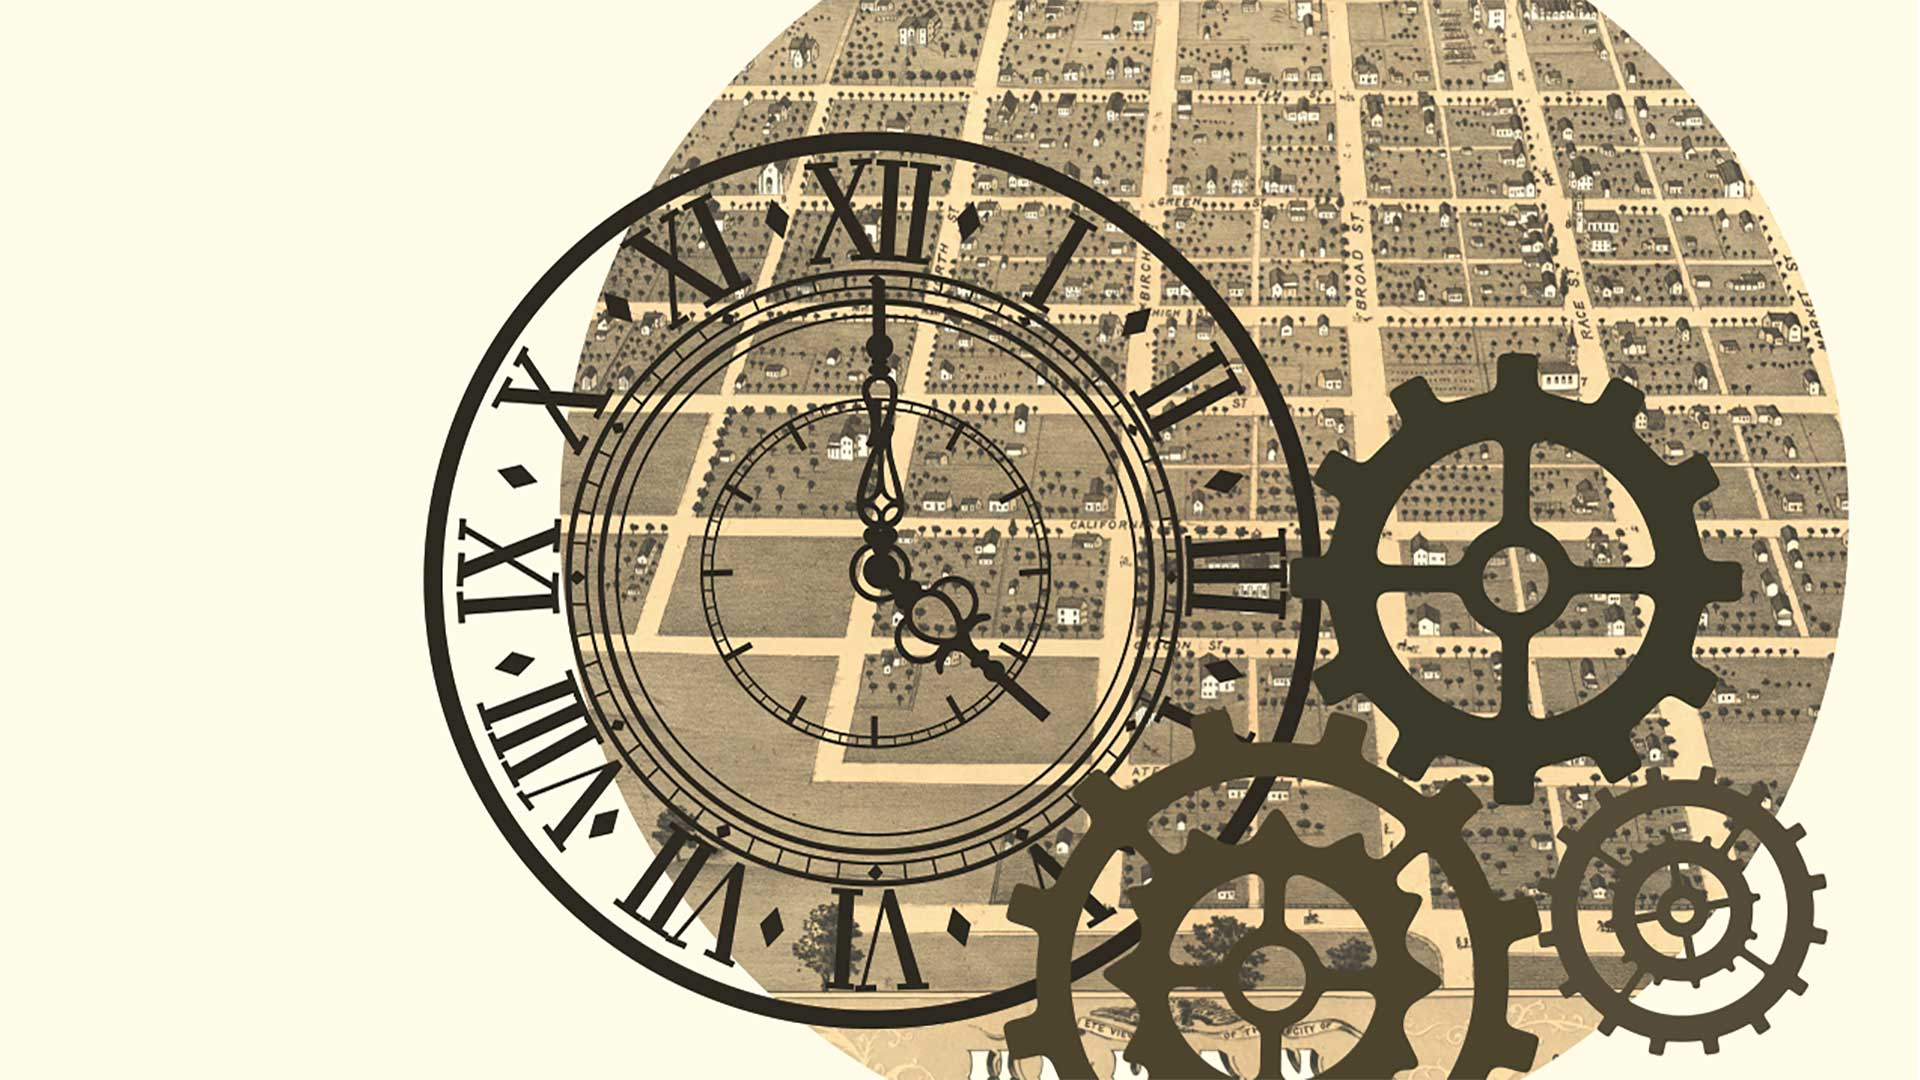 a clock and gear illustration over a historic isometric town map